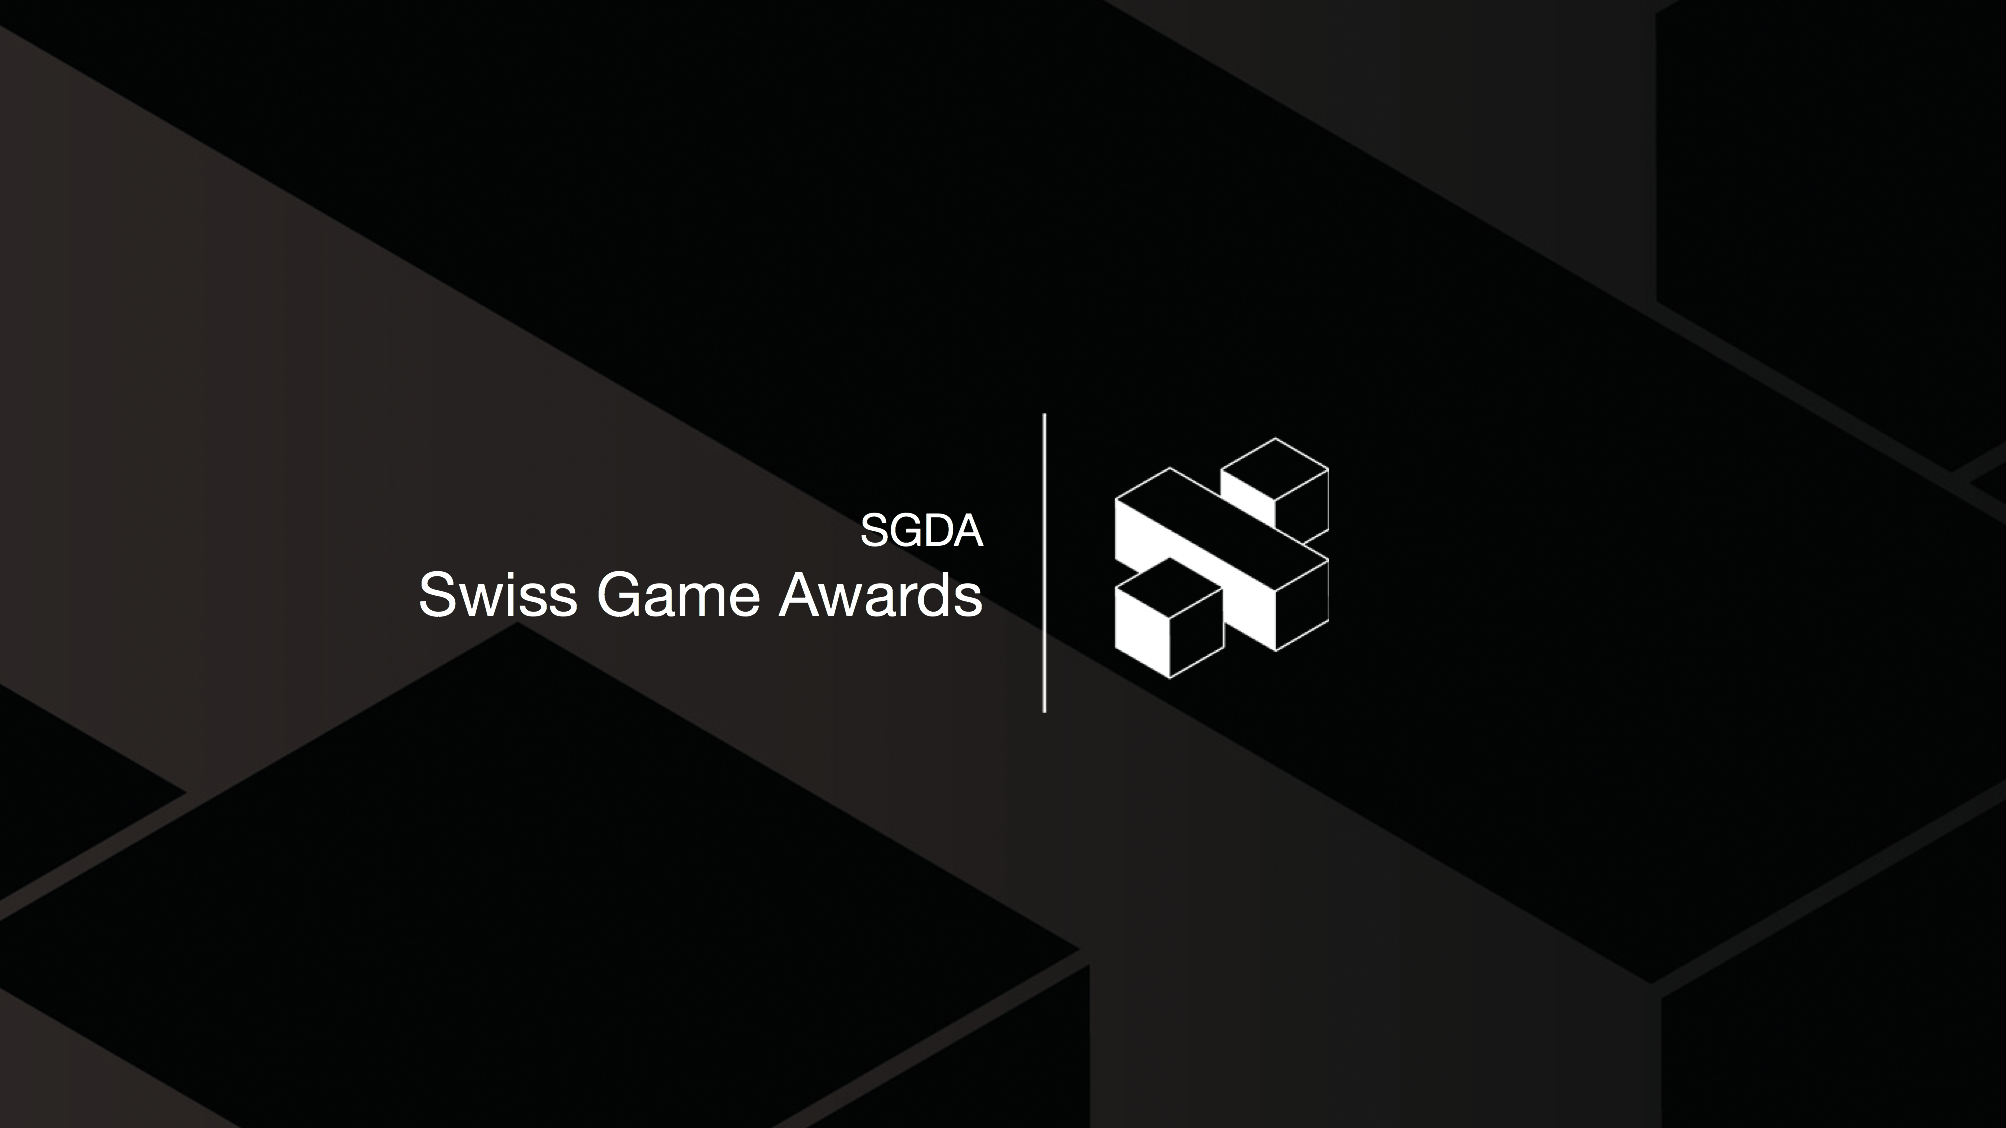 SGDA Swiss Game Awards